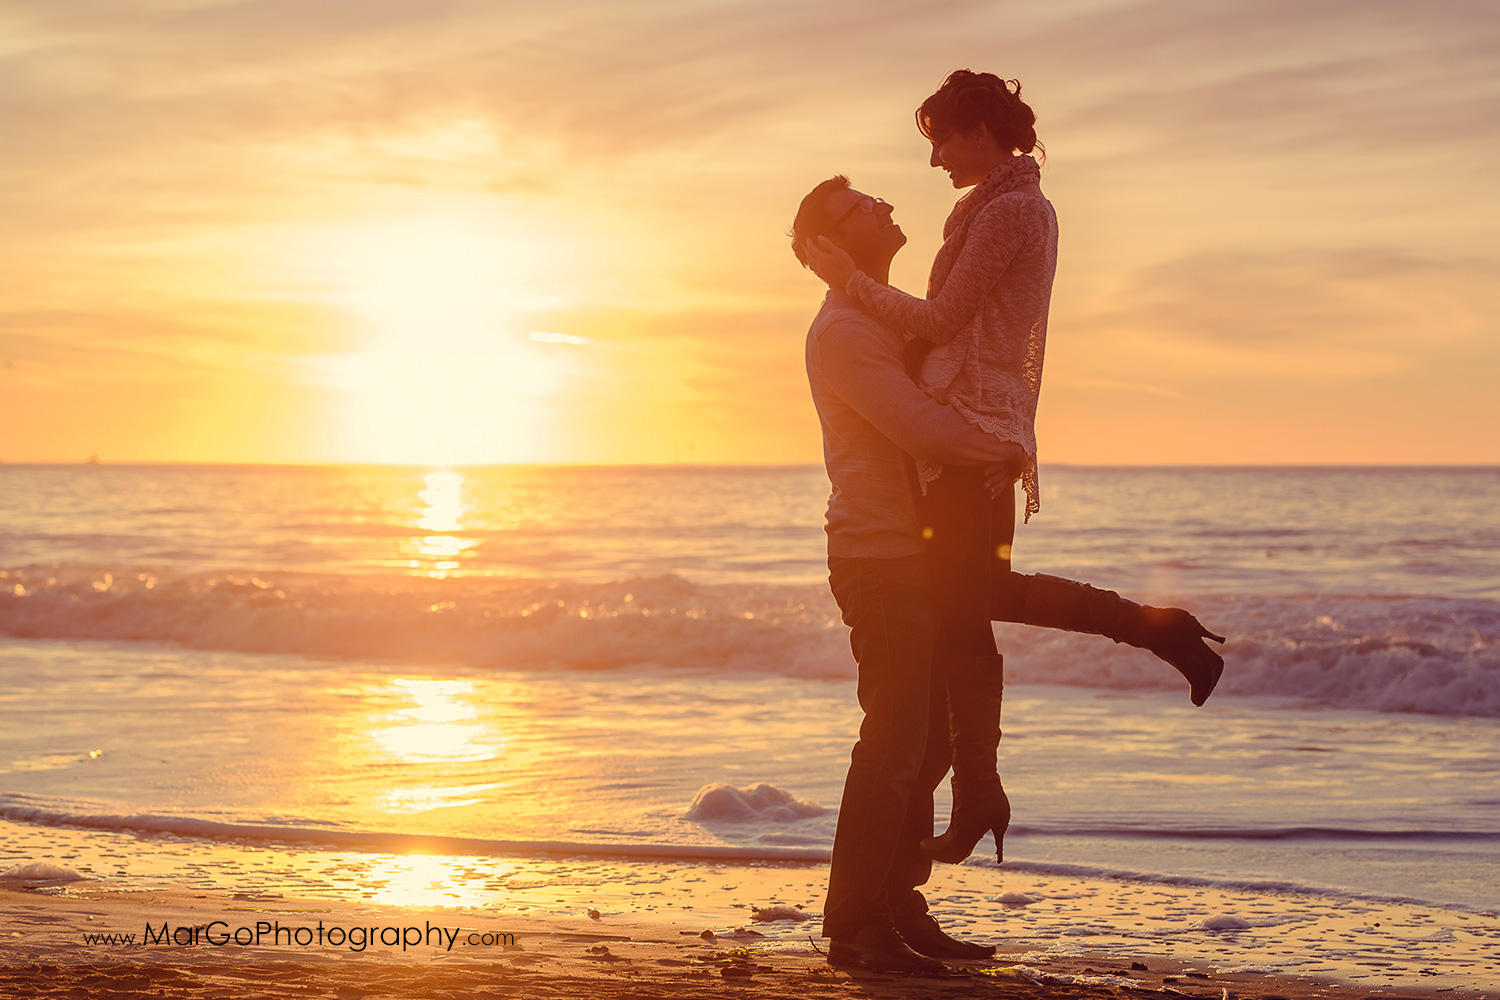 full body sunset photo of man lifting woman in grey sweater and jeans with ocean in background during engagement session at San Francisco Baker Beach